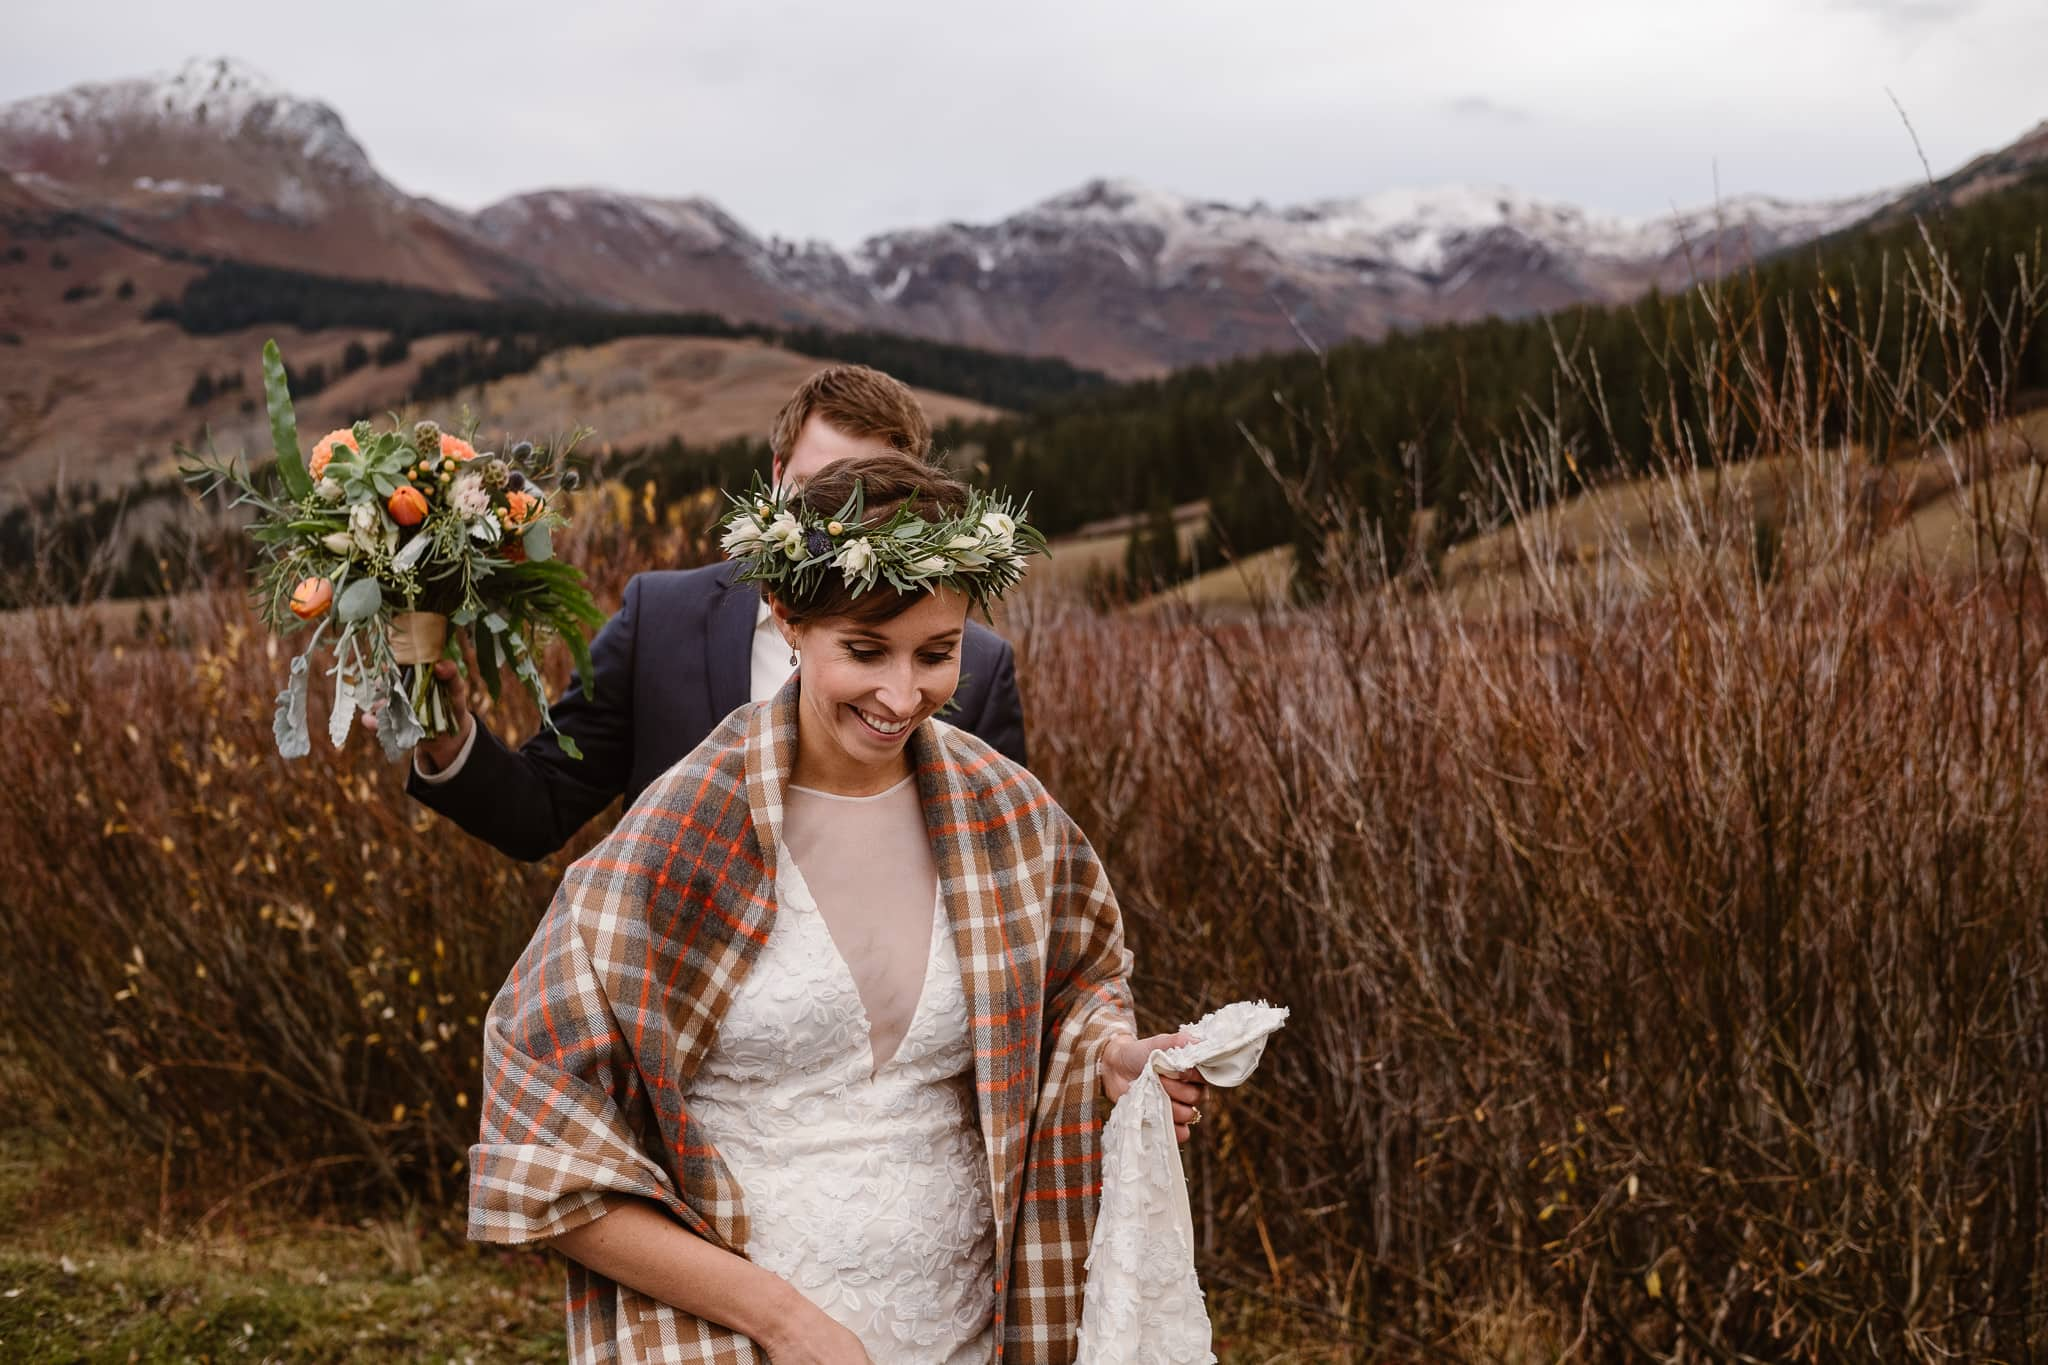 Crested Butte Wedding Photographer, Scarp Ridge Lodge intimate elopement, outdoor elopement in Colorado, Colorado mountain adventure wedding